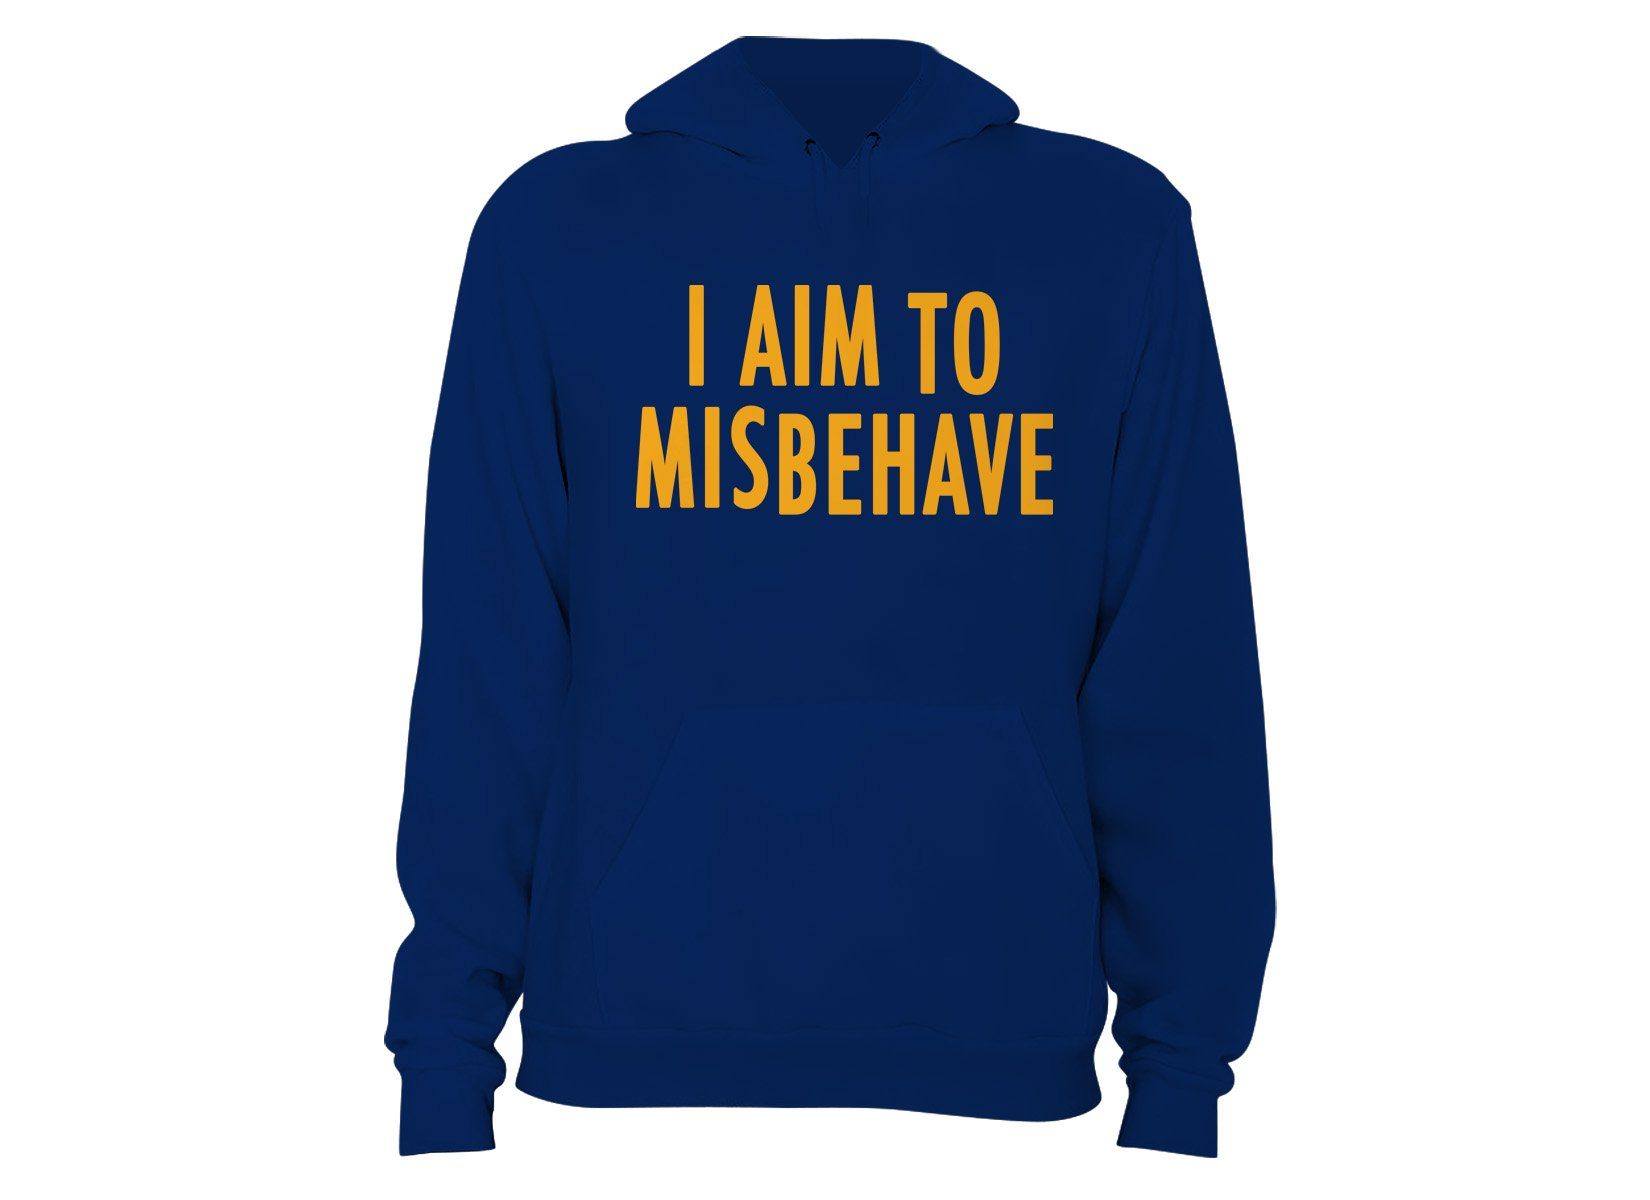 I Aim To Misbehave on Hoodie